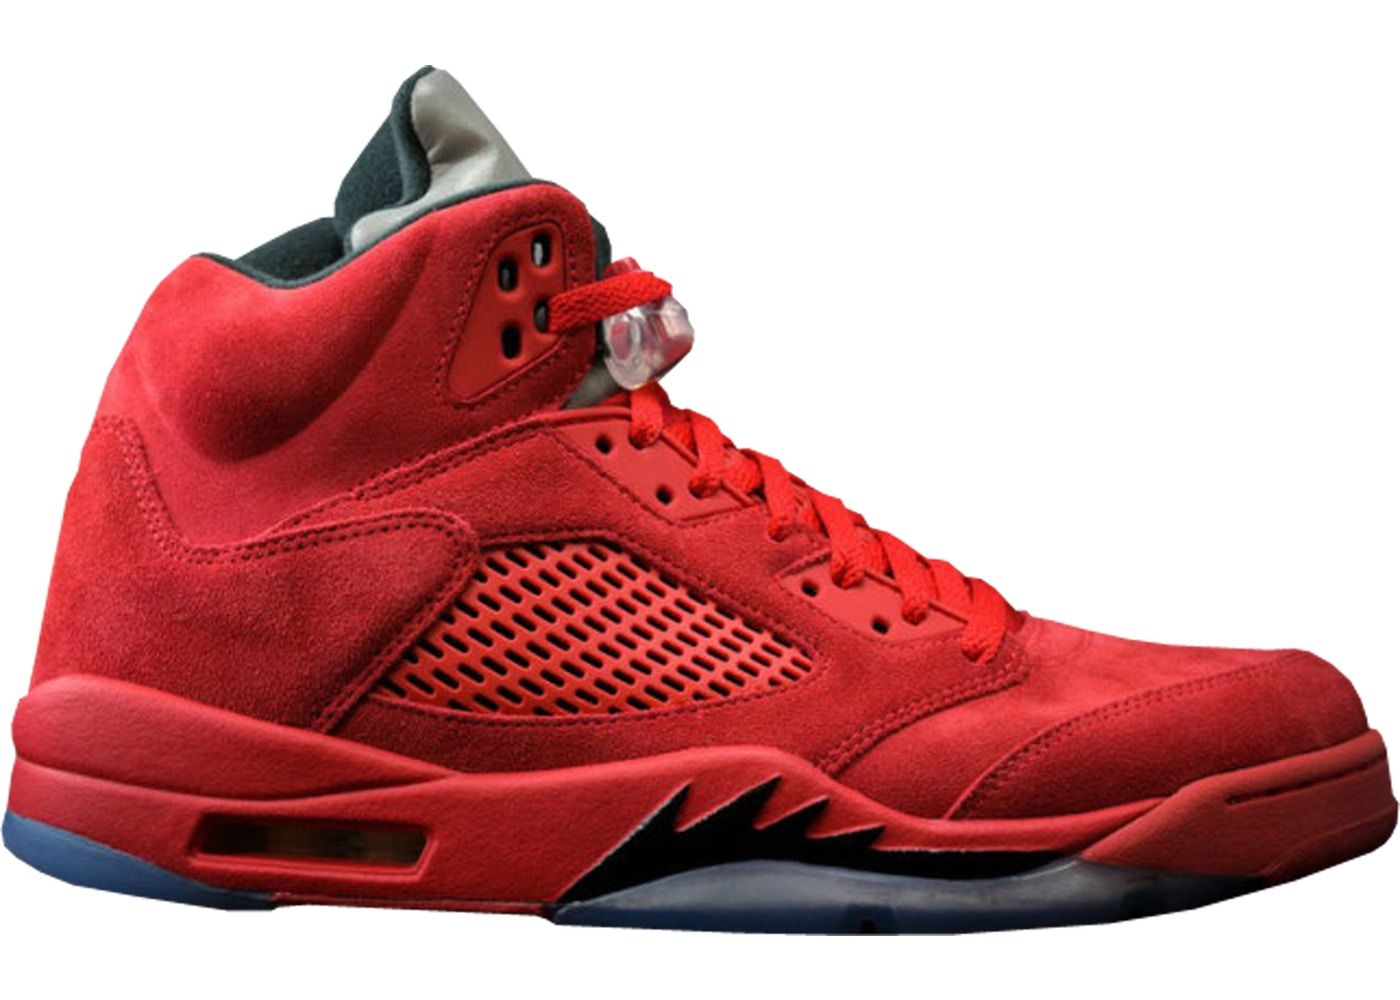 6bda934e Jordan 5 Retro Red Suede | sneaker | Jordans, Air jordans, Red suede ...